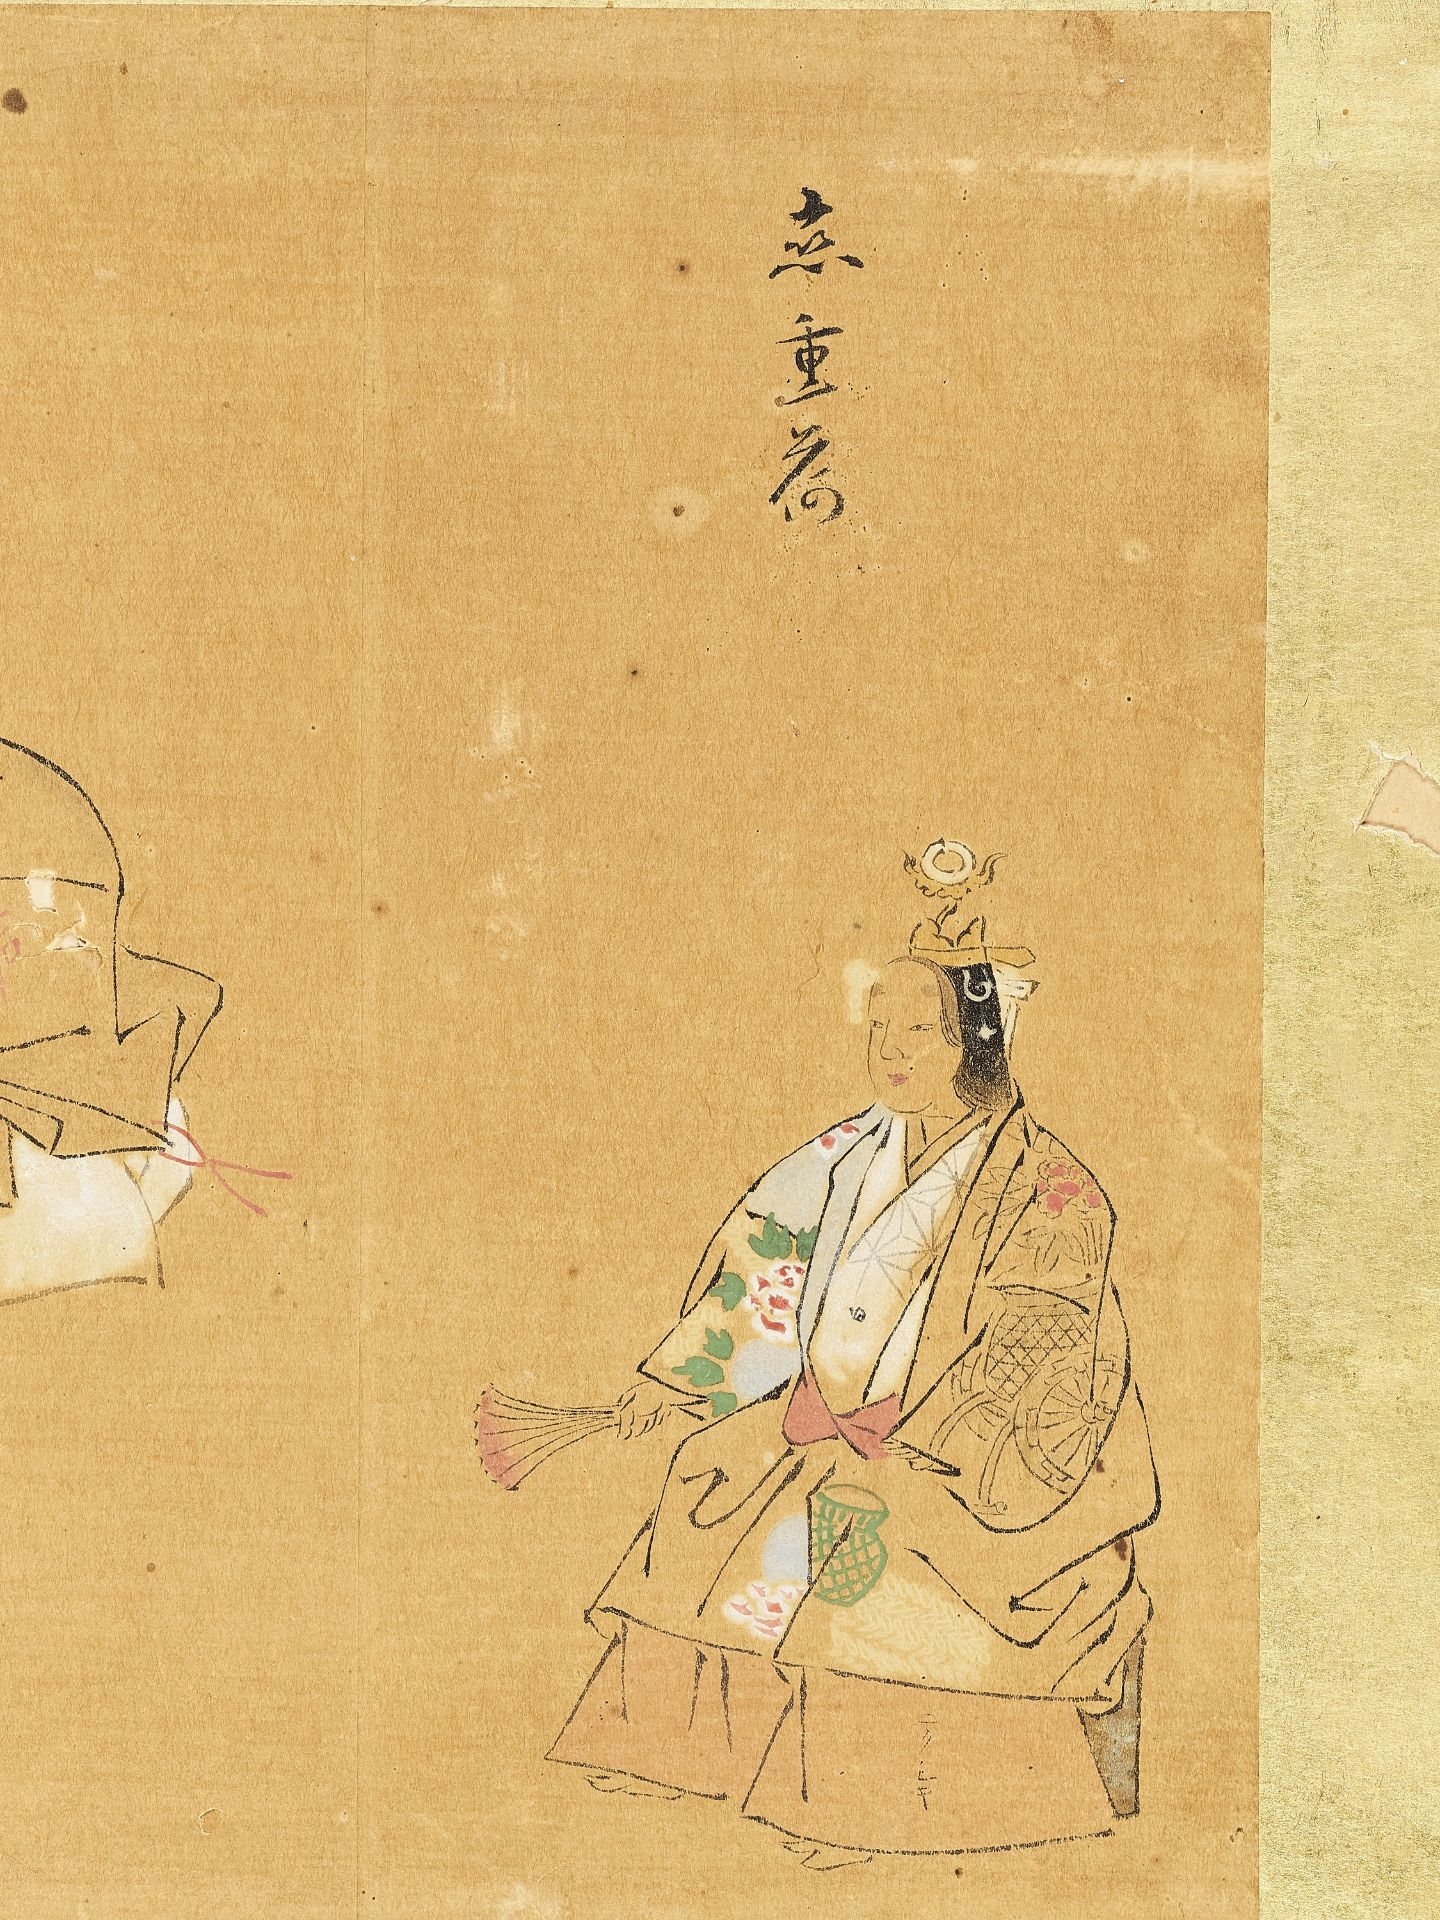 A SMALL PAINTING OF TAOIST FIGURES, 19TH CENTURY - Image 3 of 4